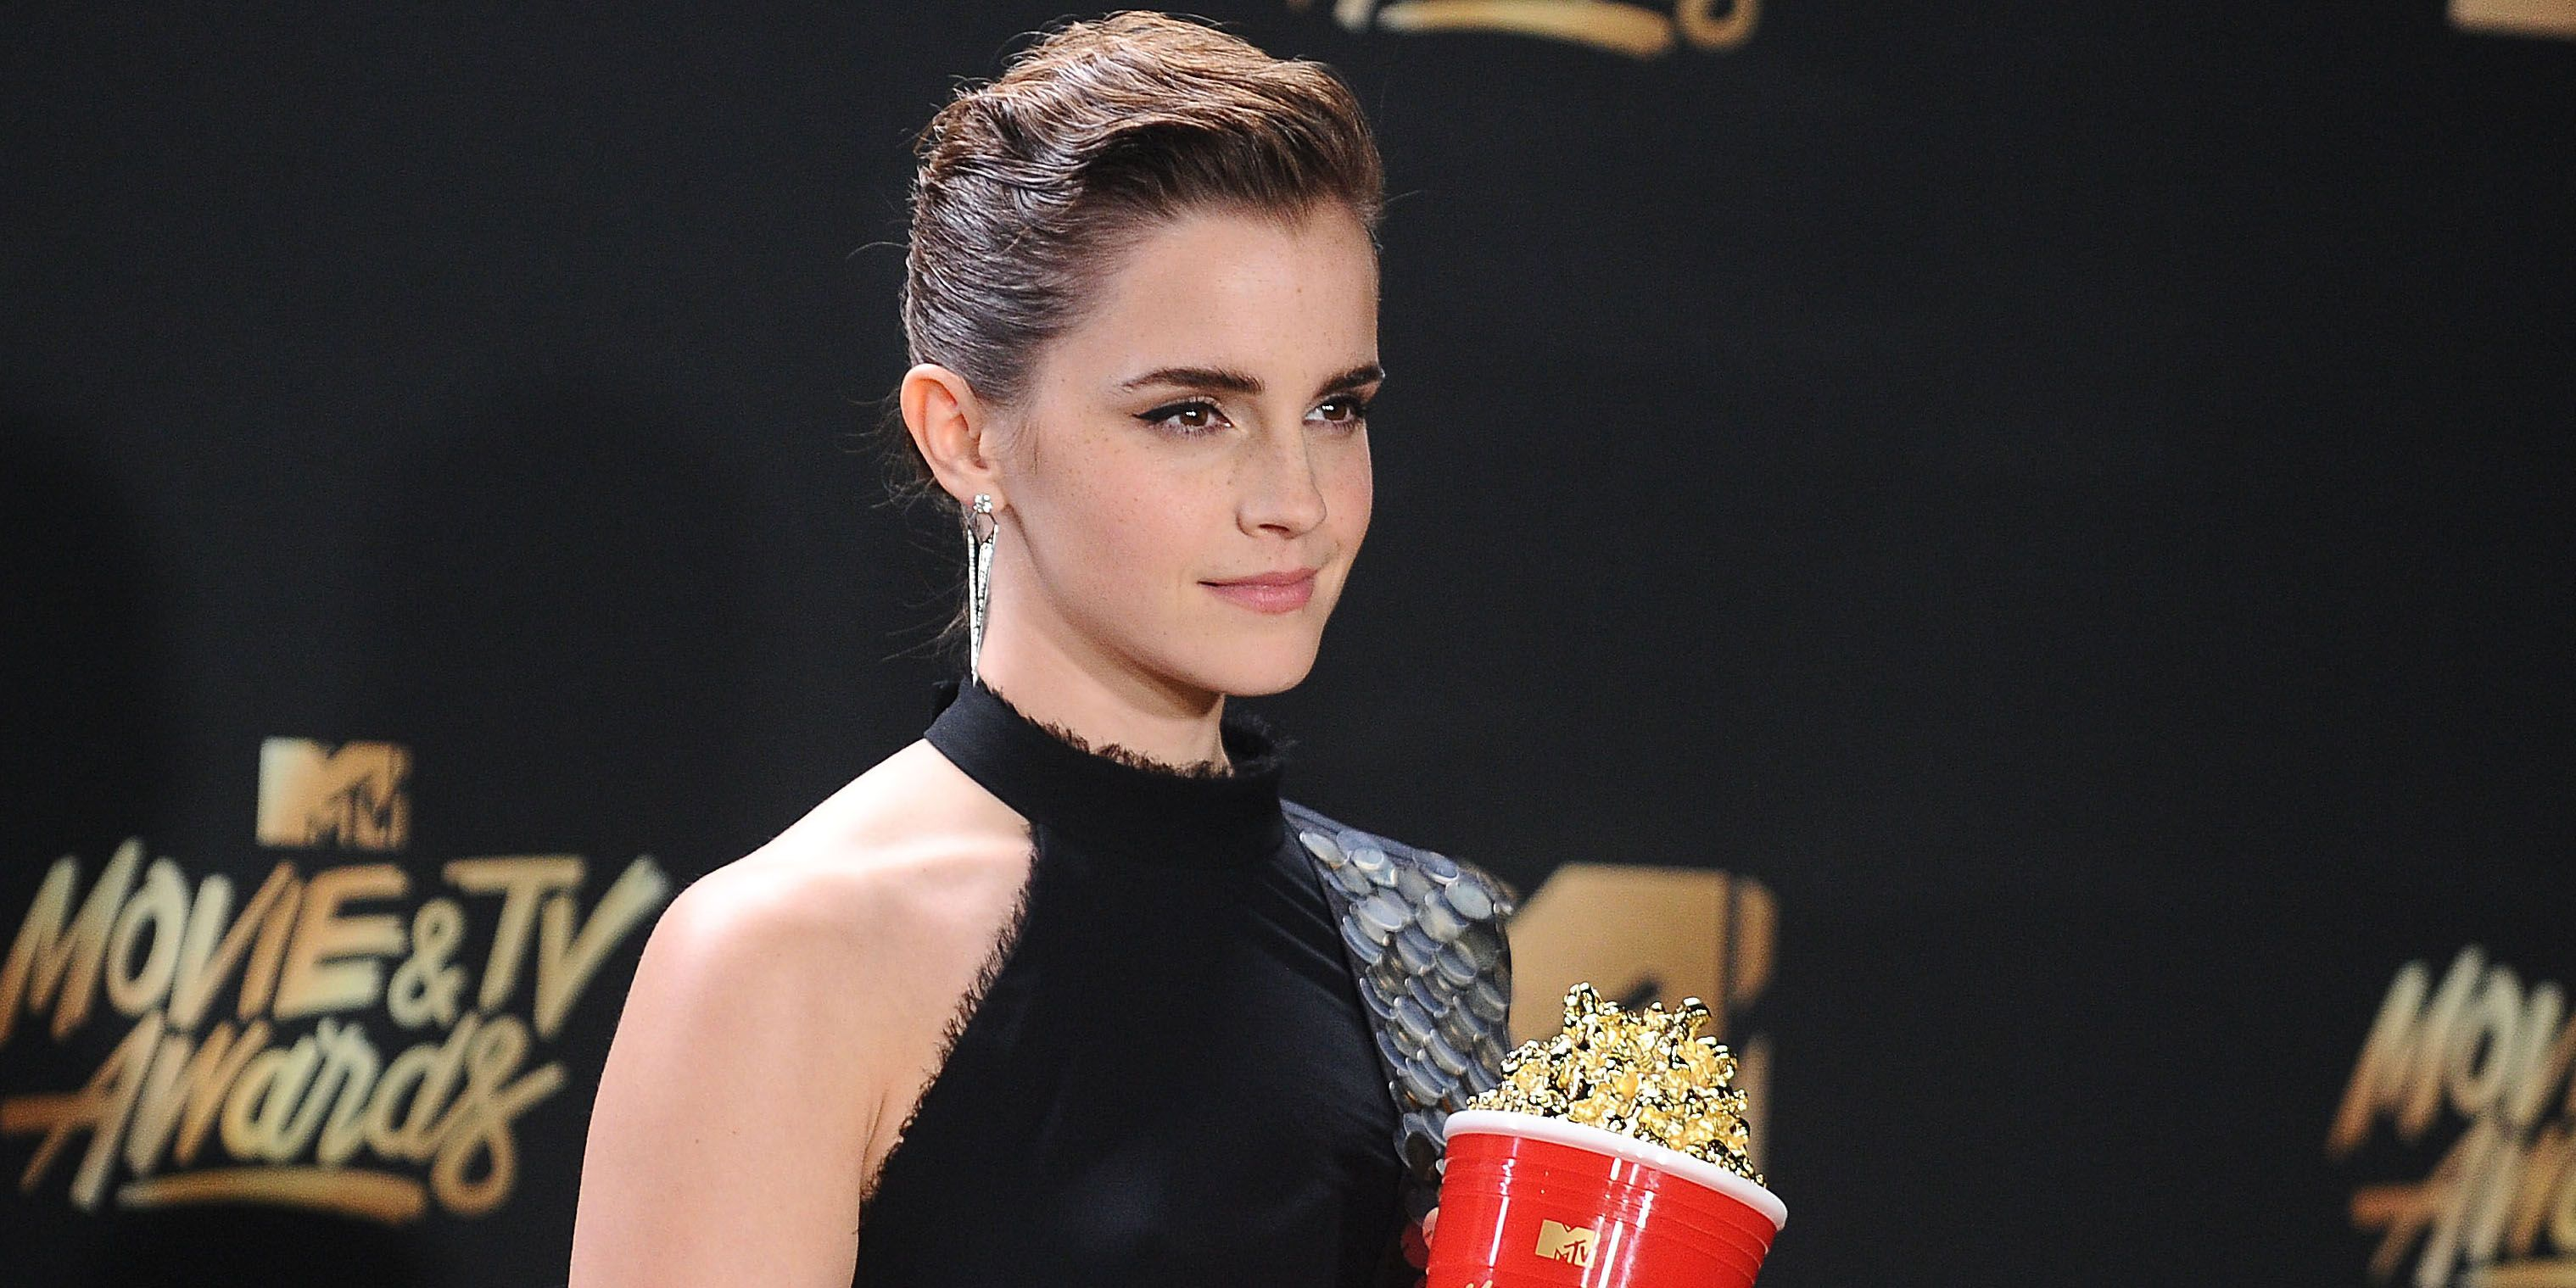 7bd7fd4d04 Emma Watson Wears Hidden Symbol At MTV Awards And Makes Important Statement  About Acceptance